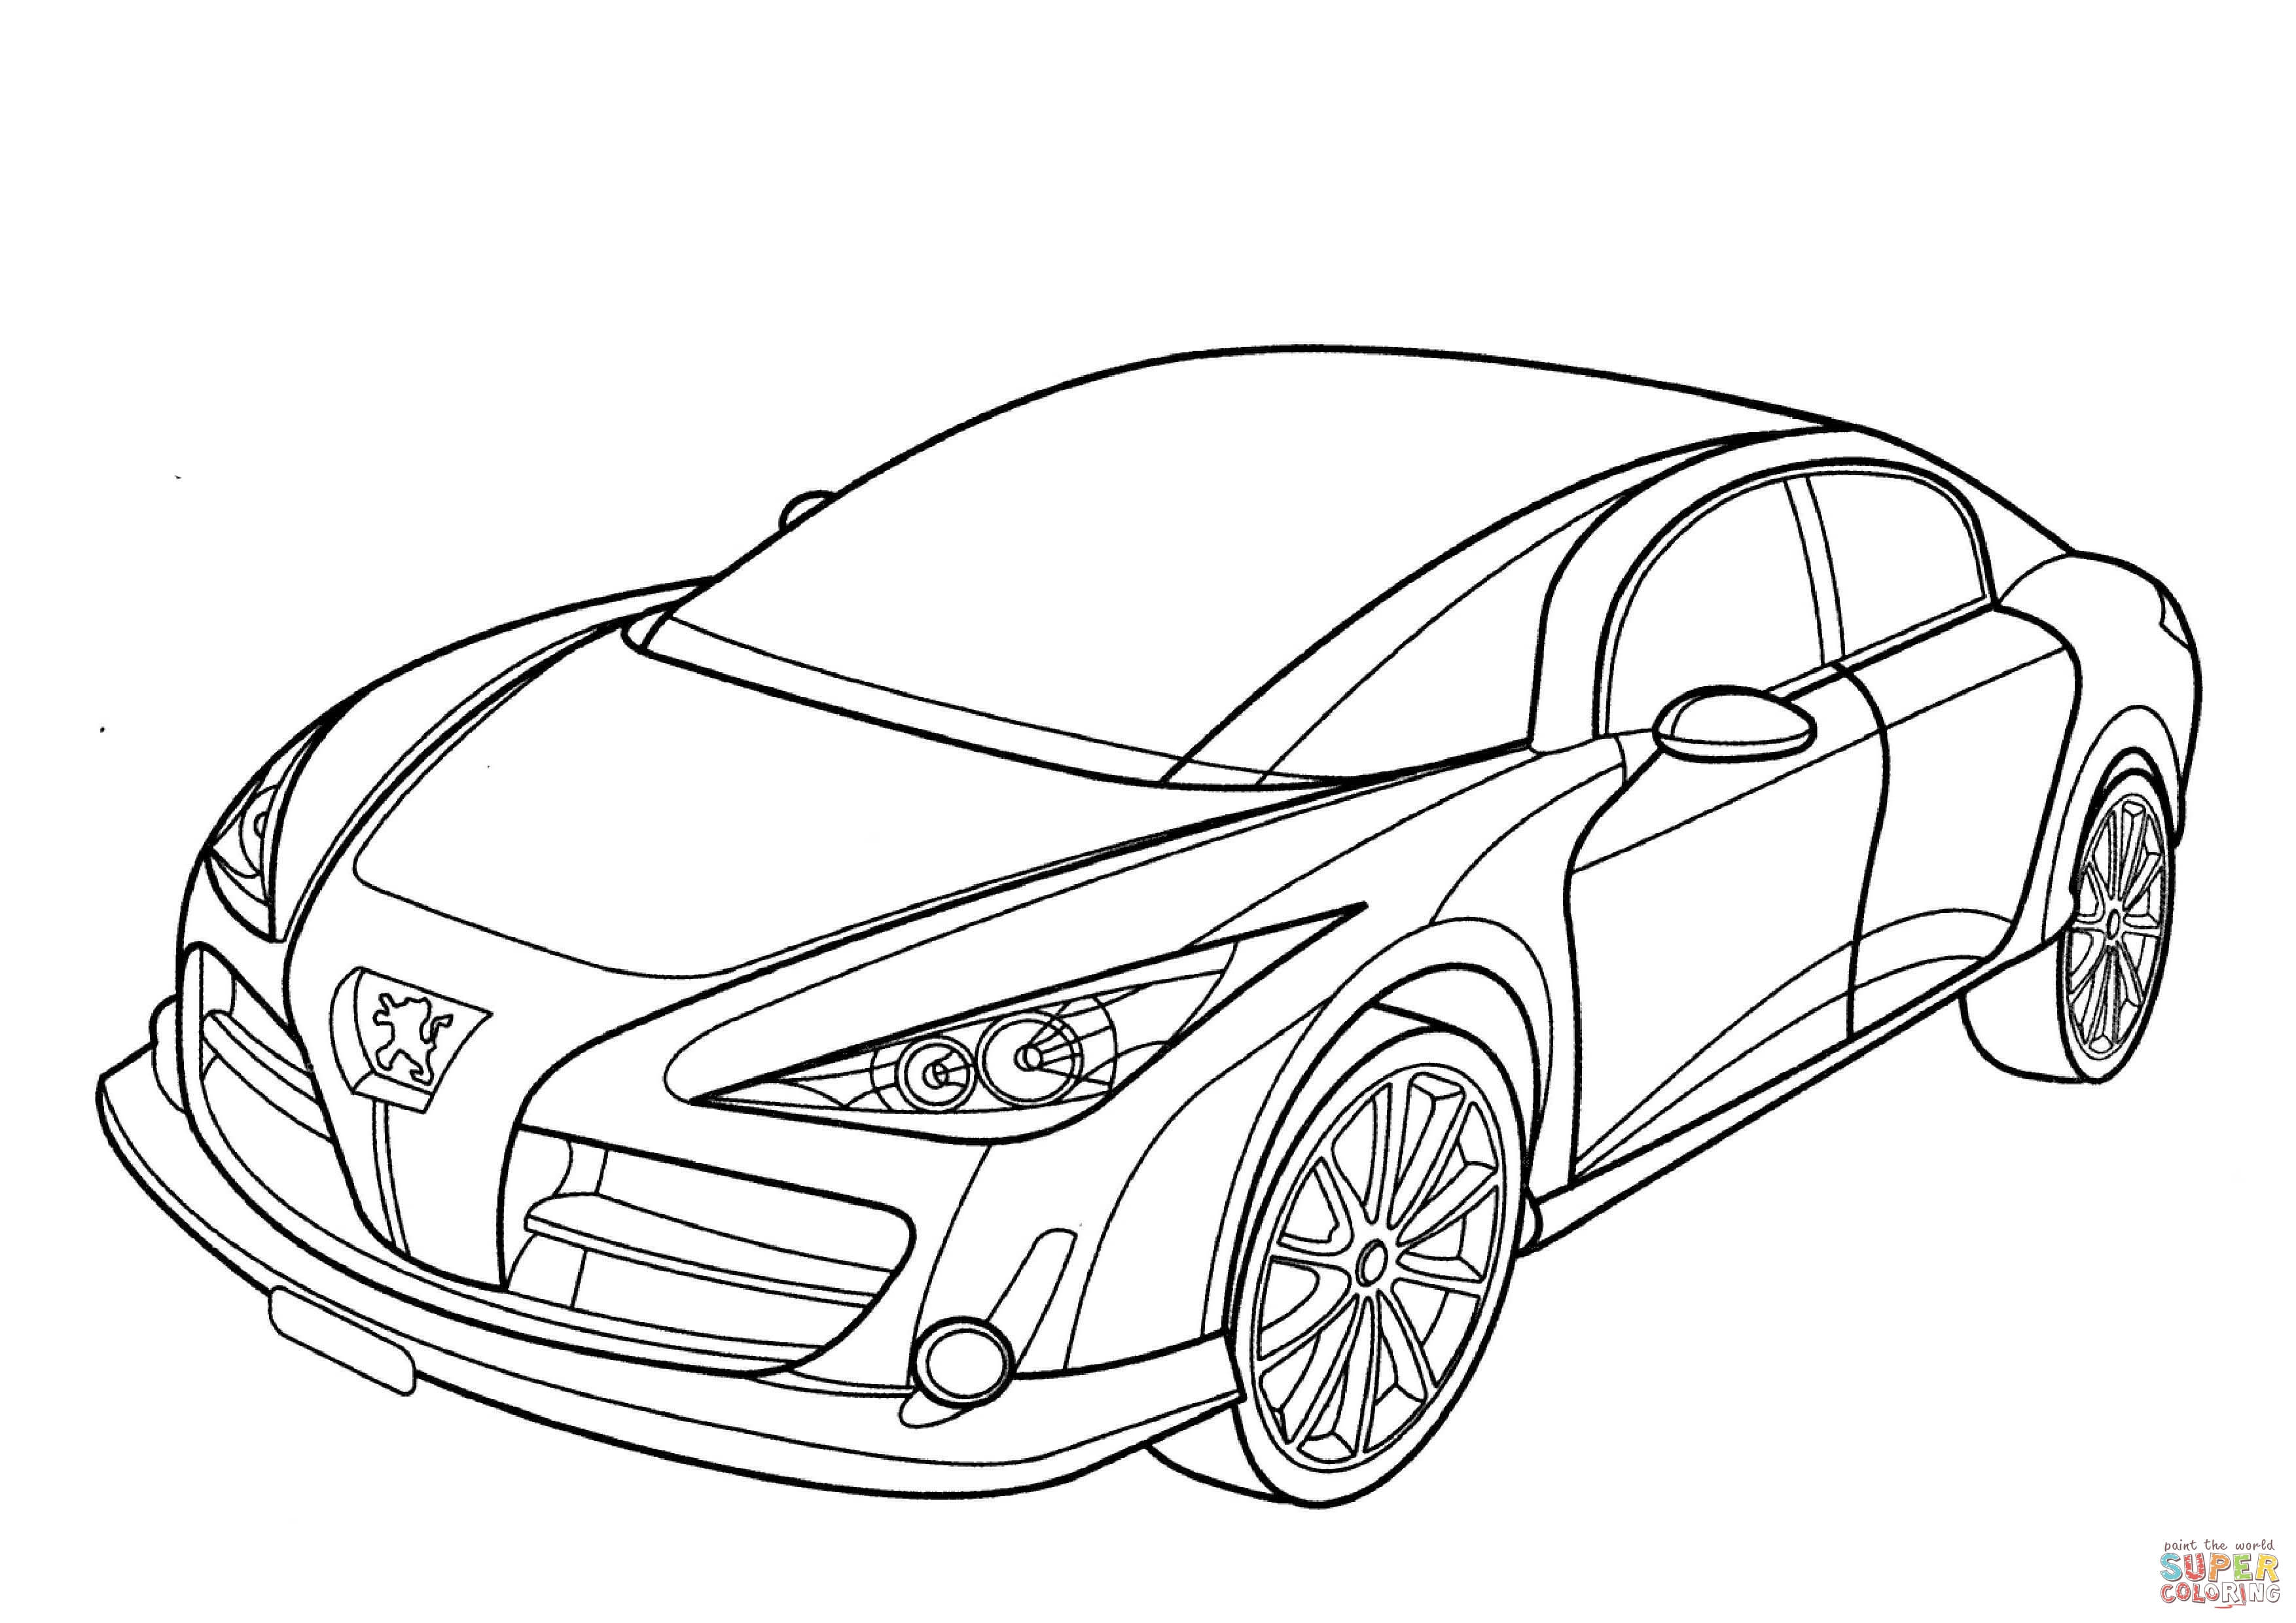 Rc Car Drawing At Getdrawings Com Free For Personal Use